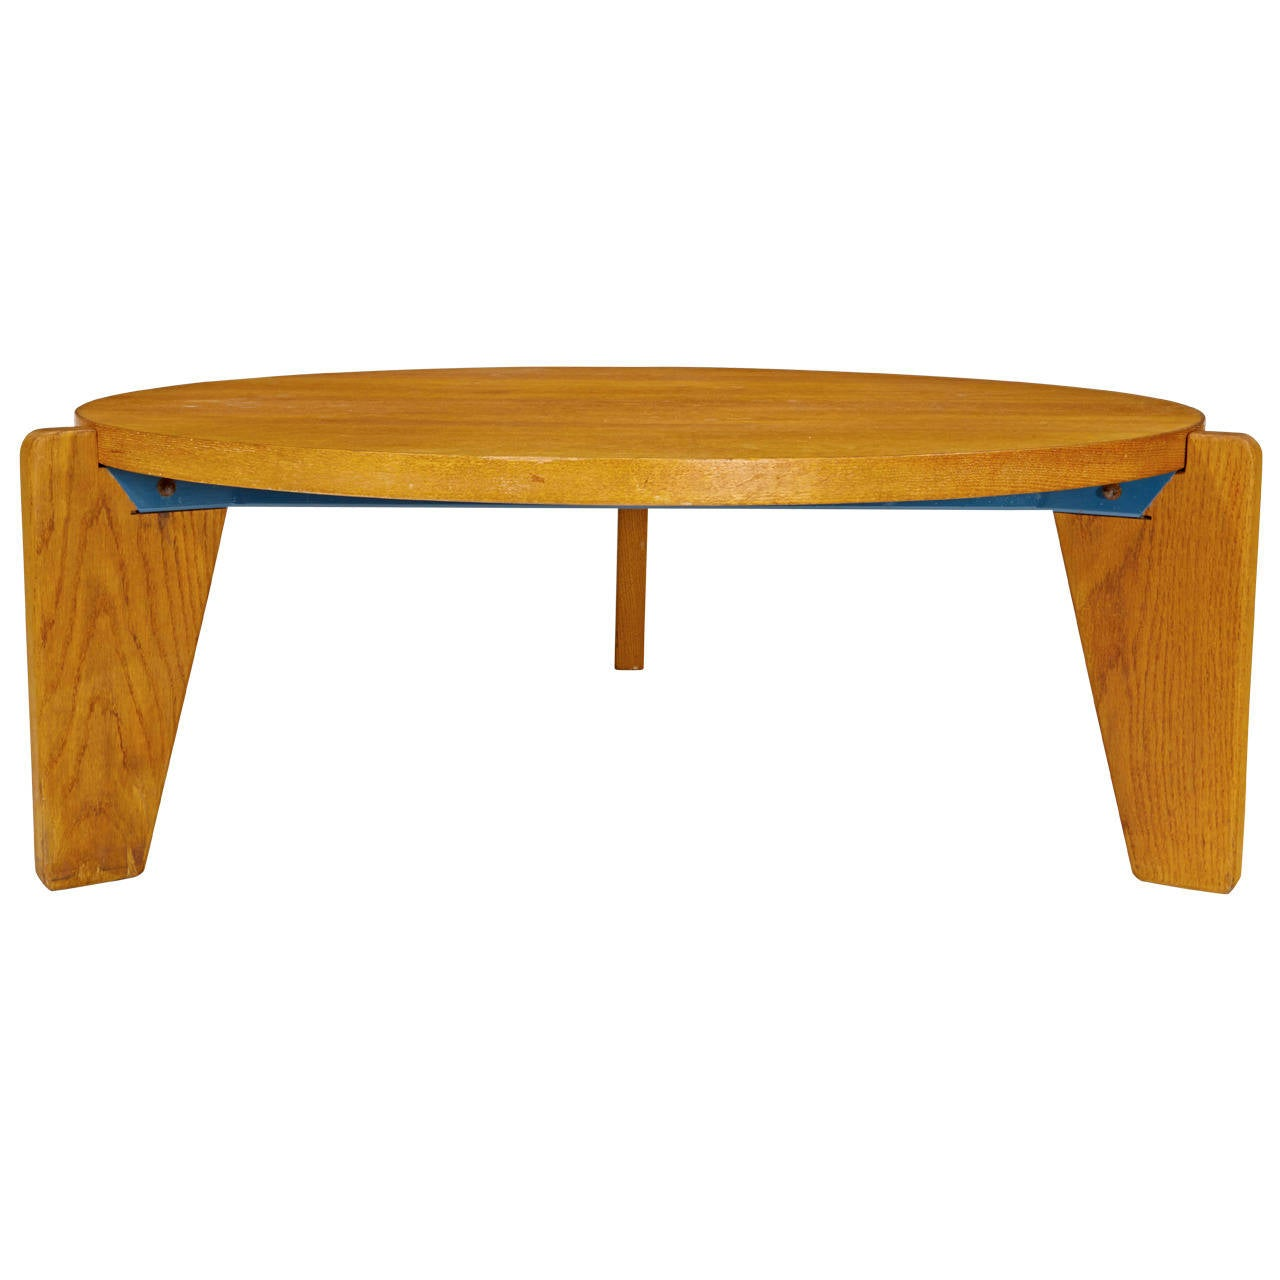 Jean prouve africa low table for sale at 1stdibs - Jean prouve coffee table ...